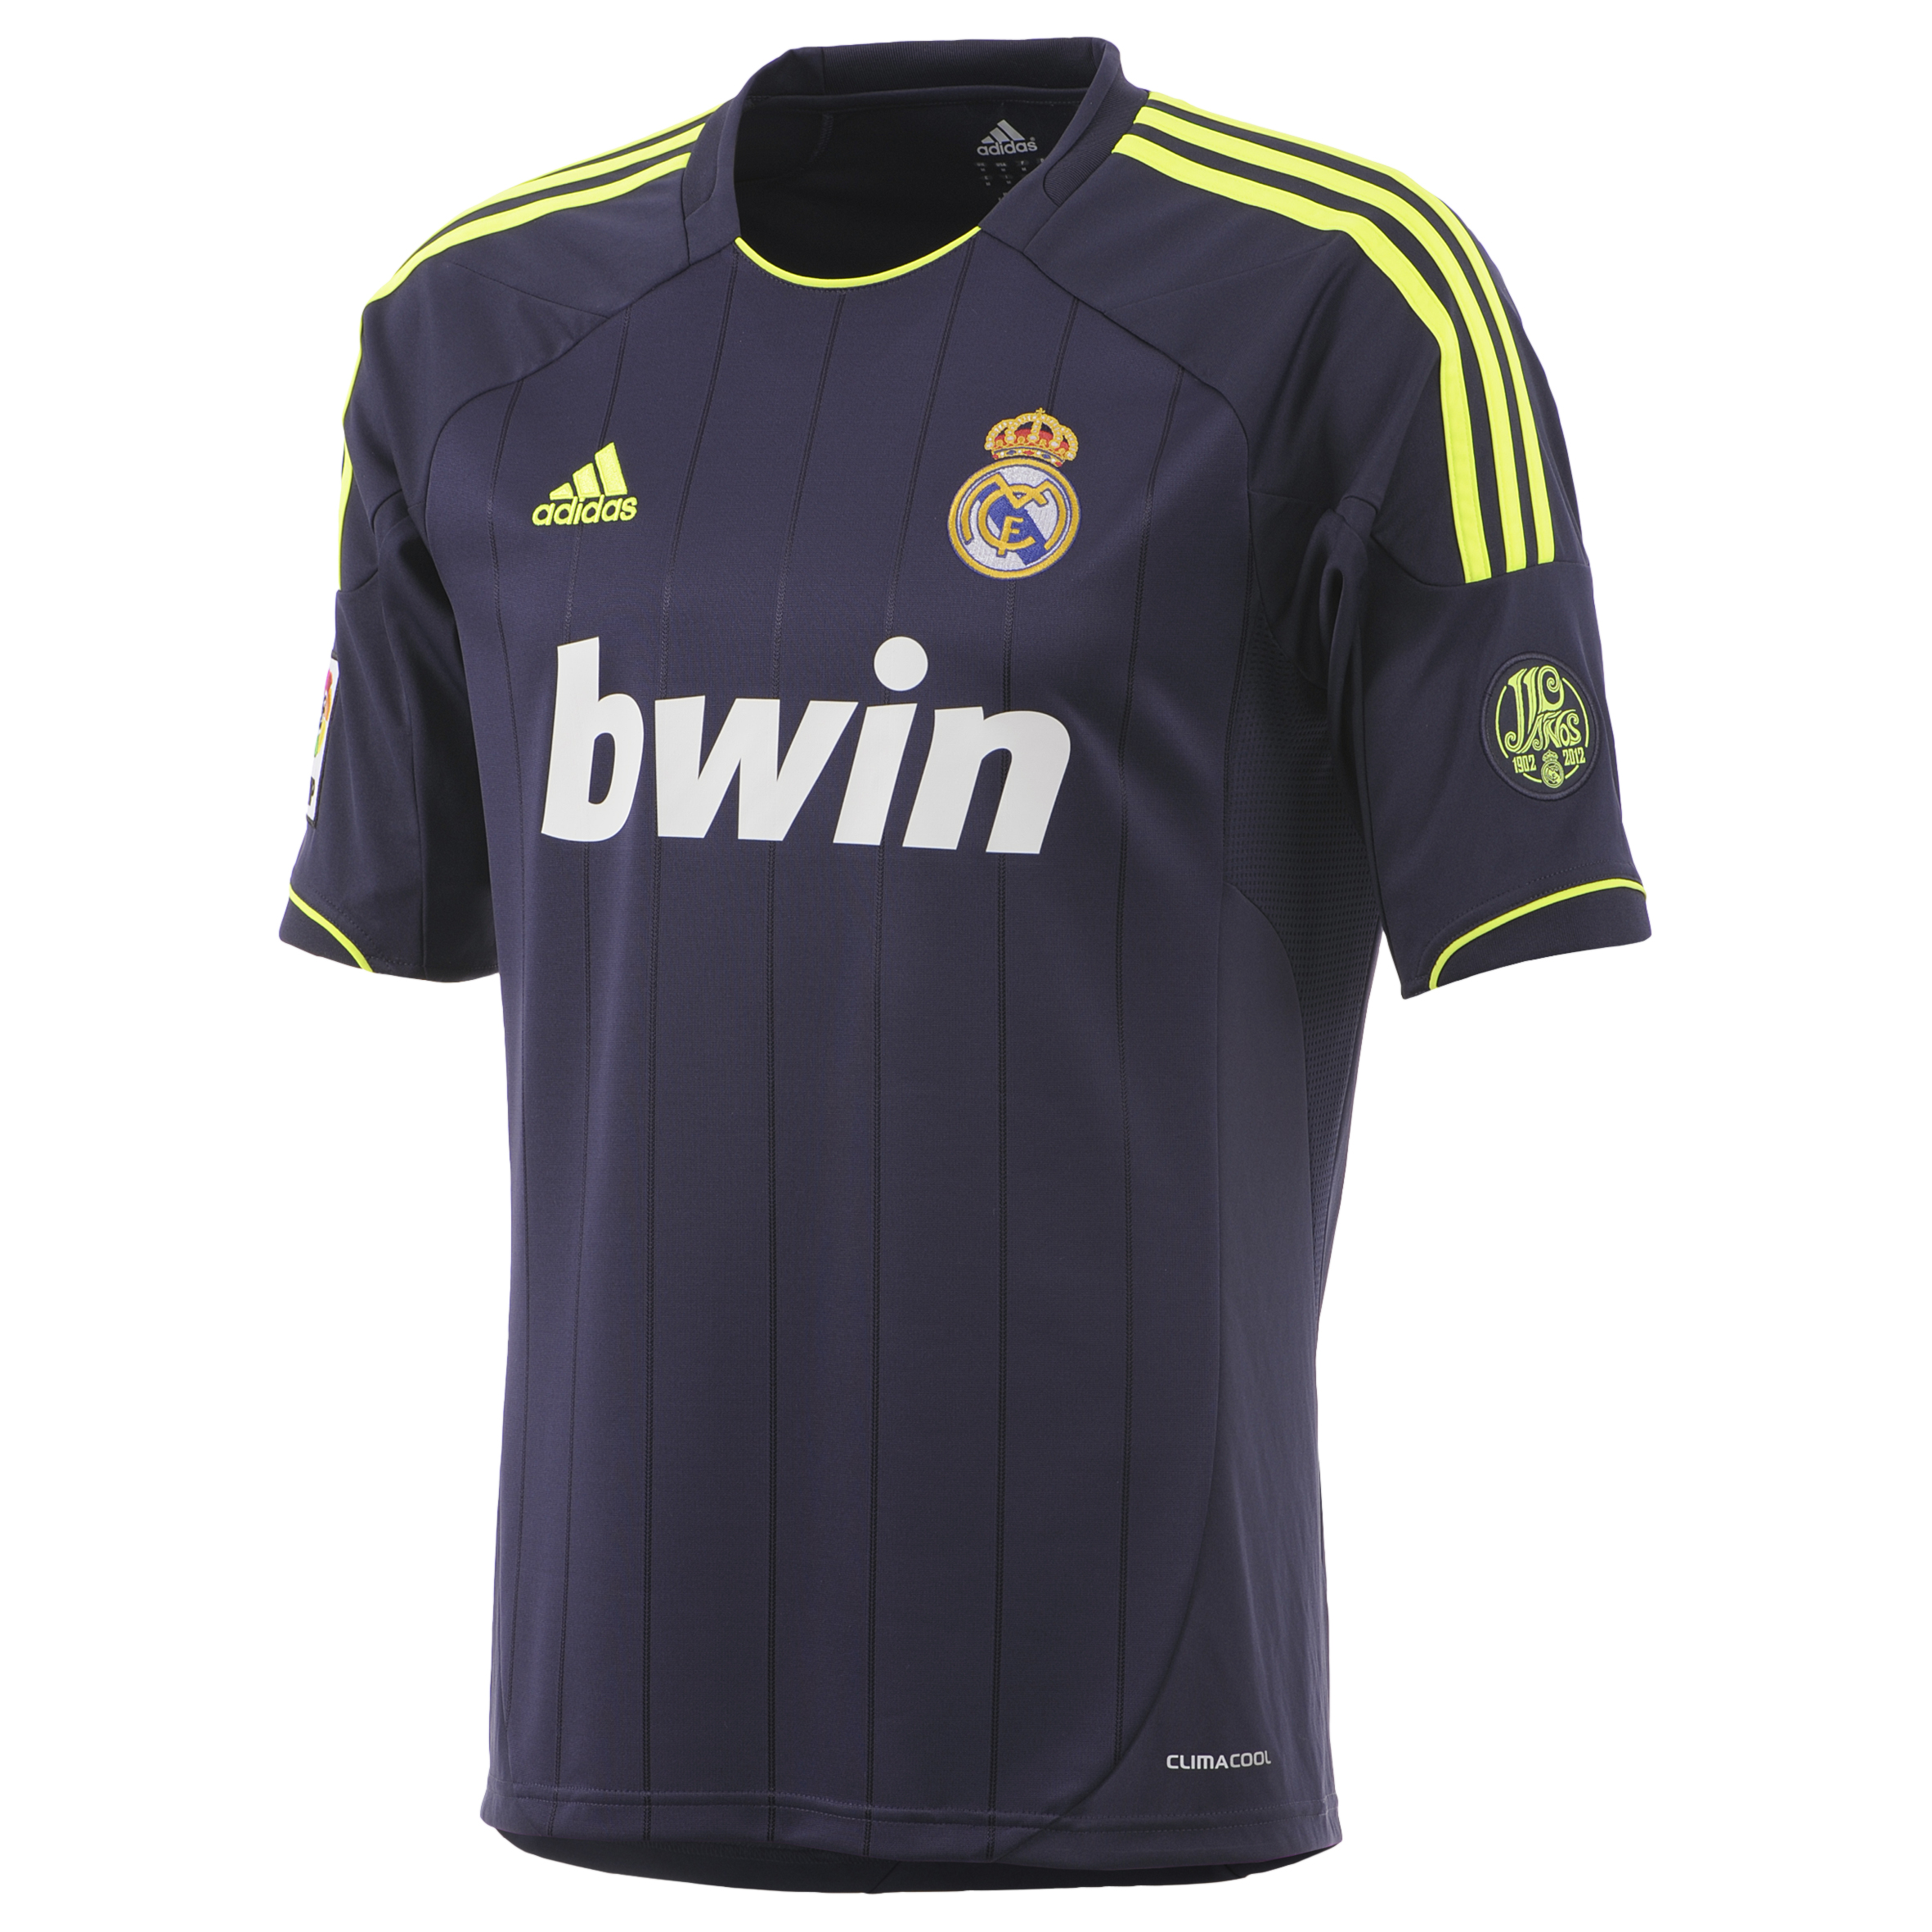 Real Madrid Away Shirt 2012/13 Youths